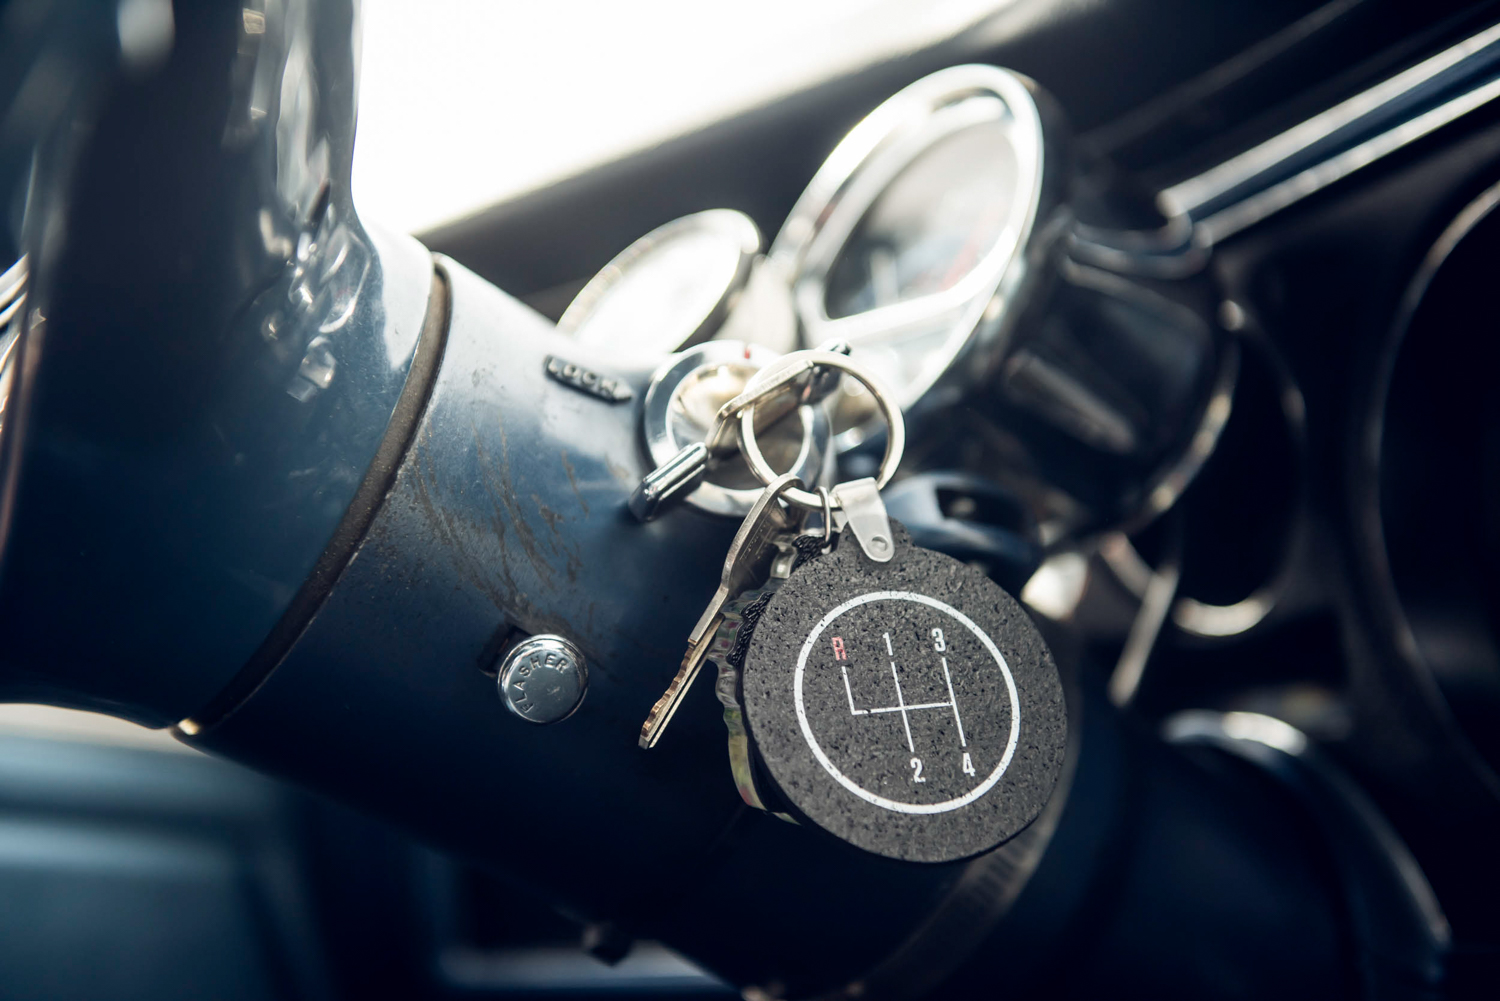 A cheap mechanical oil-pressure gauge was hastily installed before departure.